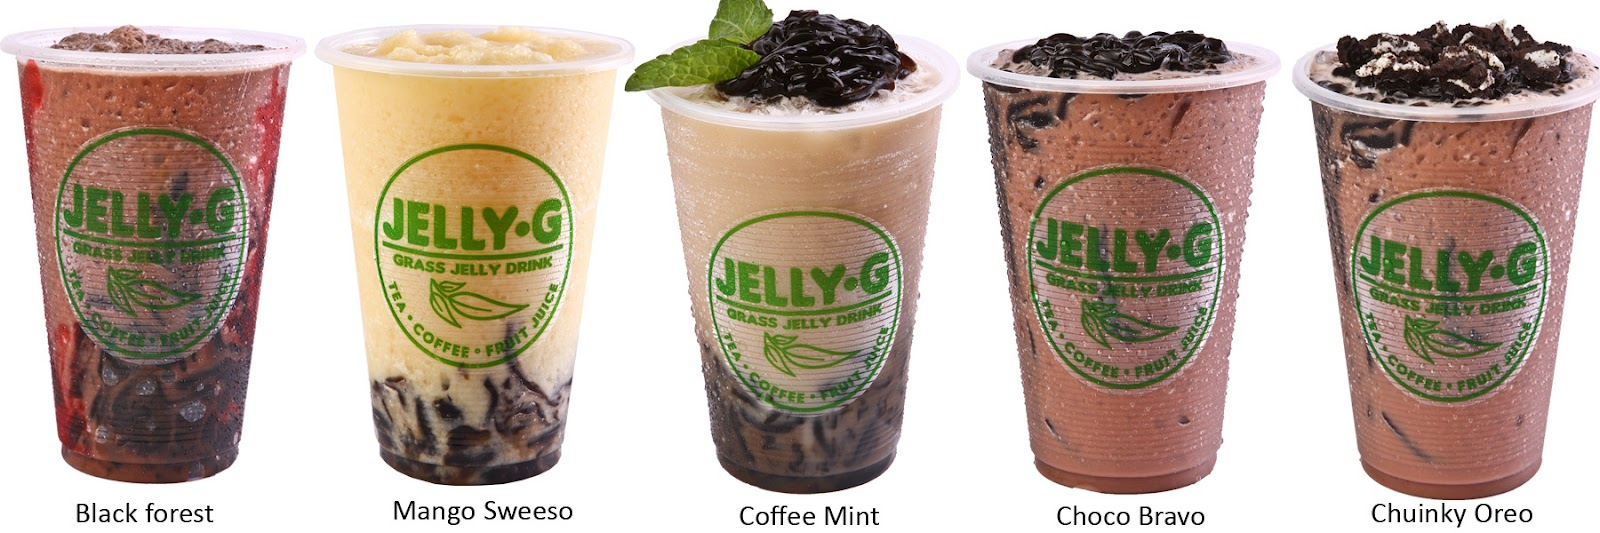 JELLY-G THAI MILK TEA NOW SERVING DELECTABLE, HEALTHY DRINKS | THE WEB ...